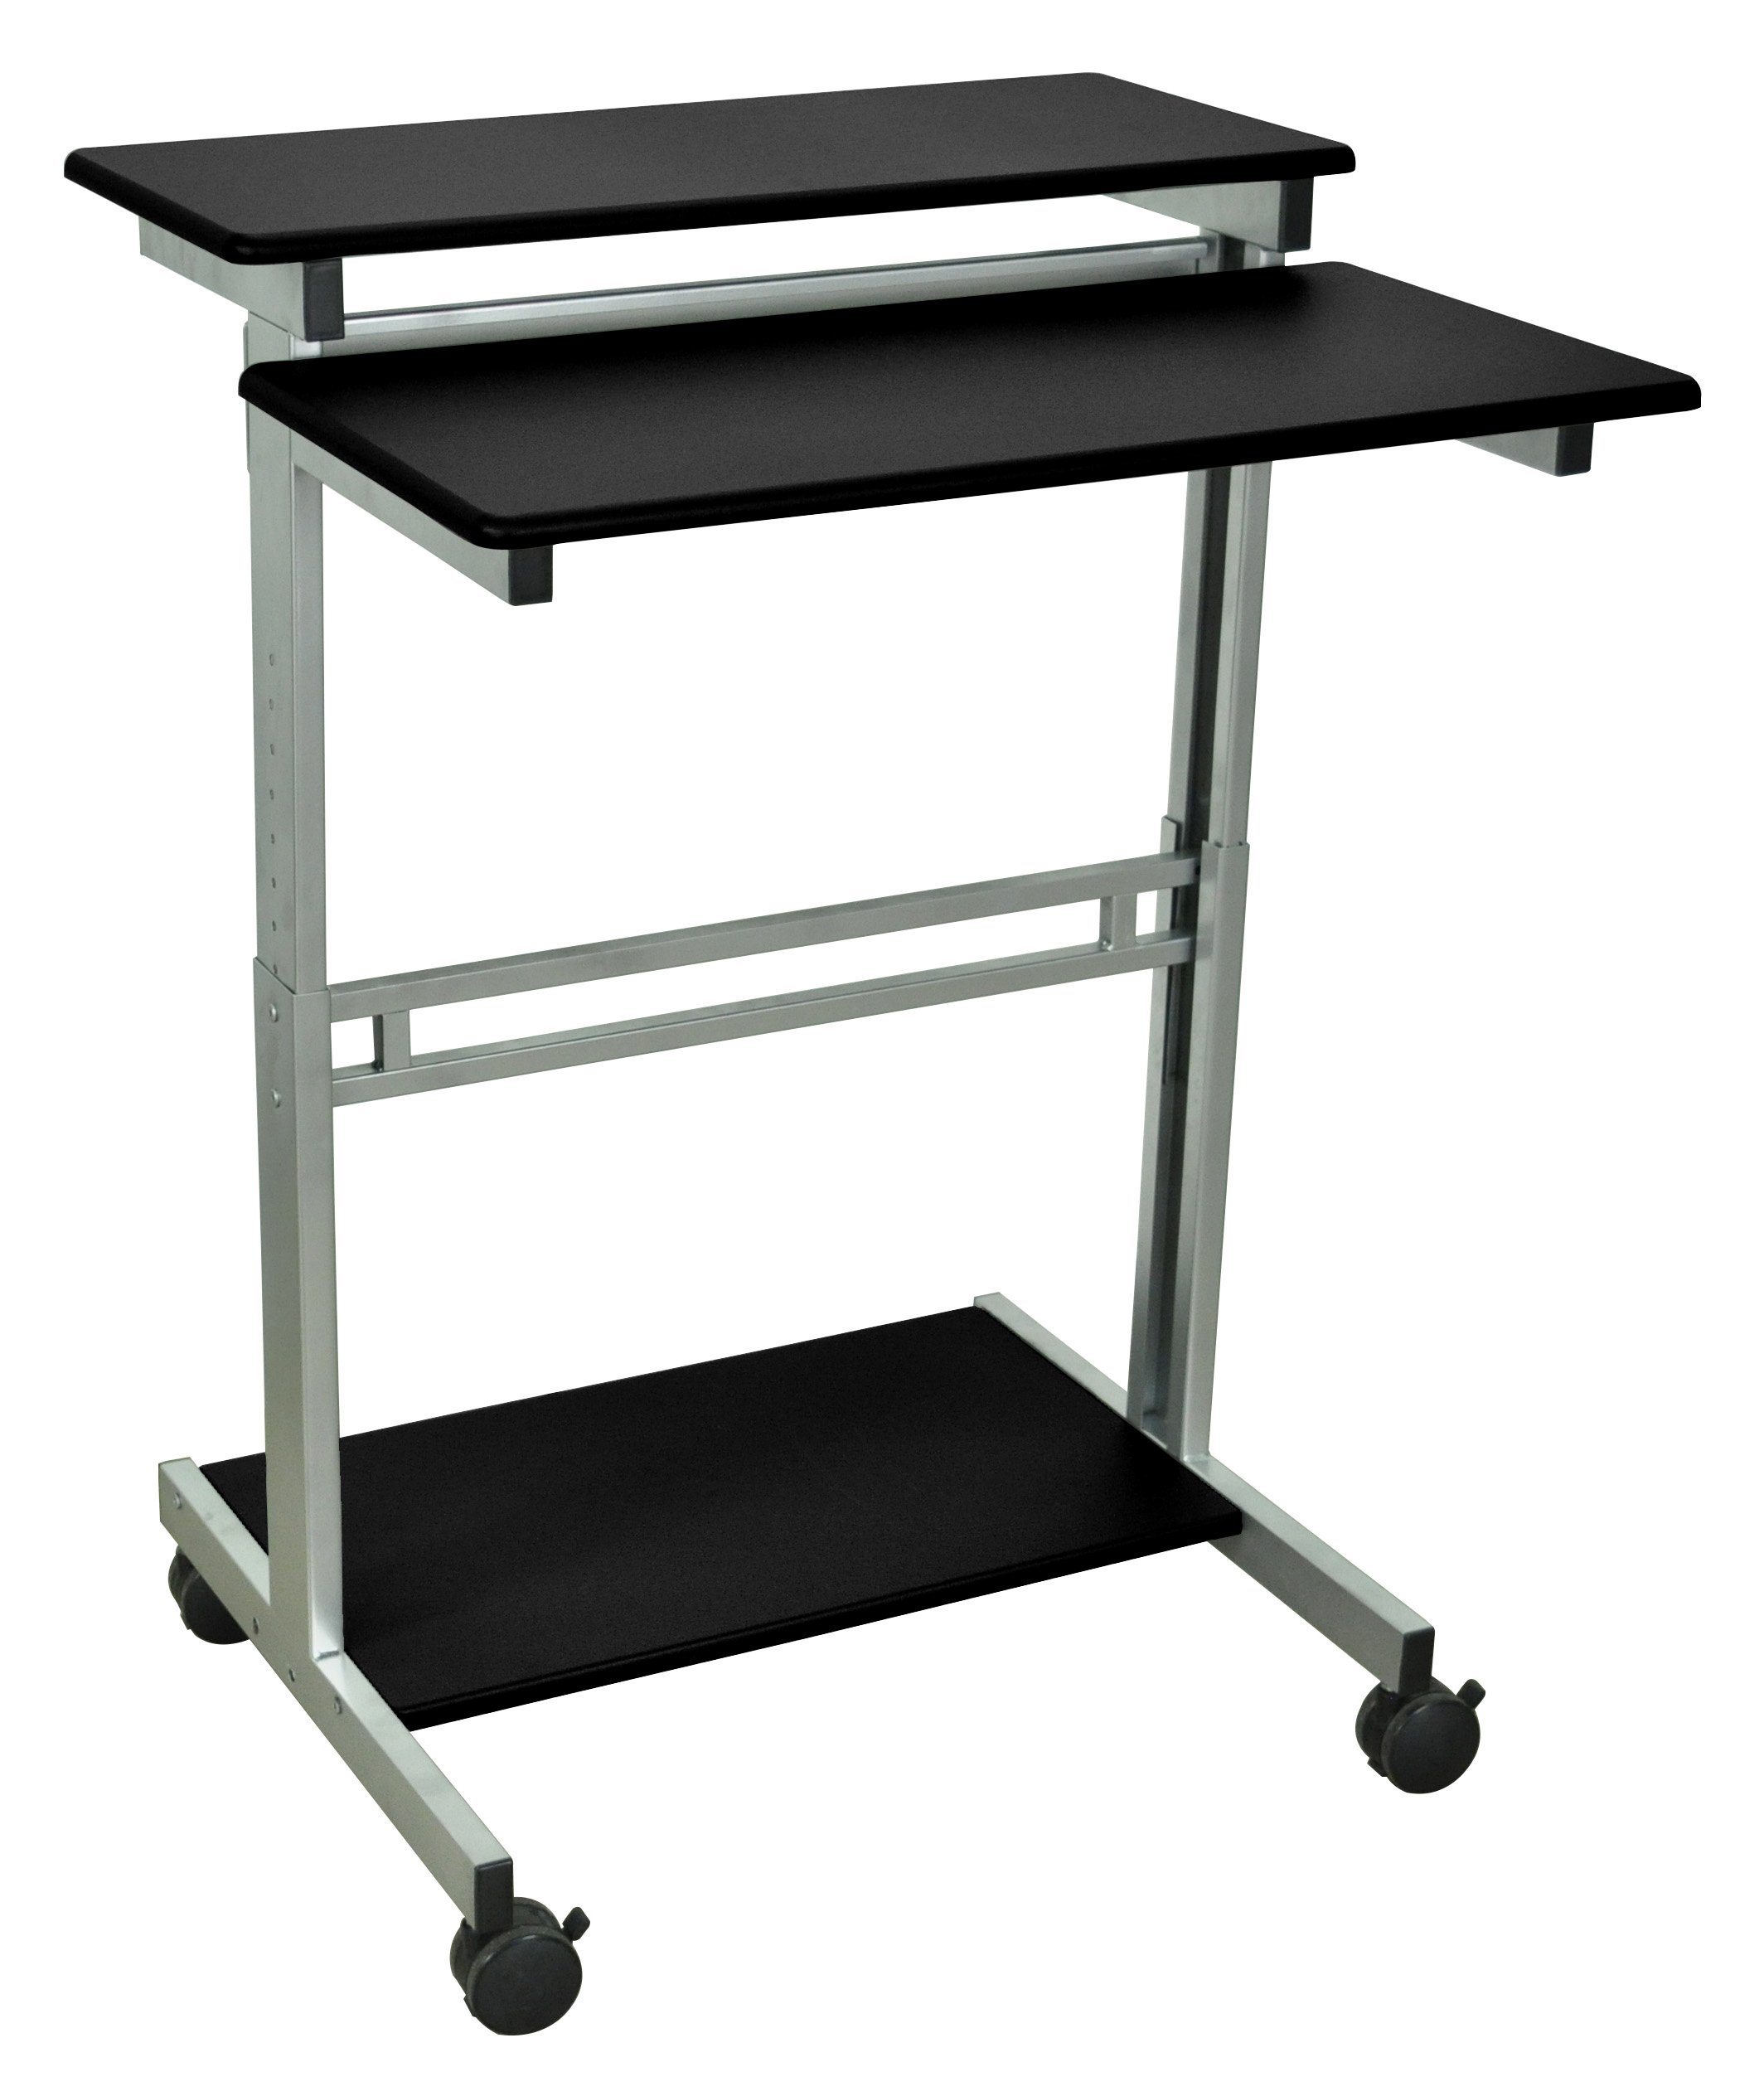 DMD Stand-Up Mobile Audio Visual (AV) Presentation and Workstation for Laptops, Tablets and Projectors or Data Entry, 31 1/2 Inch, Black